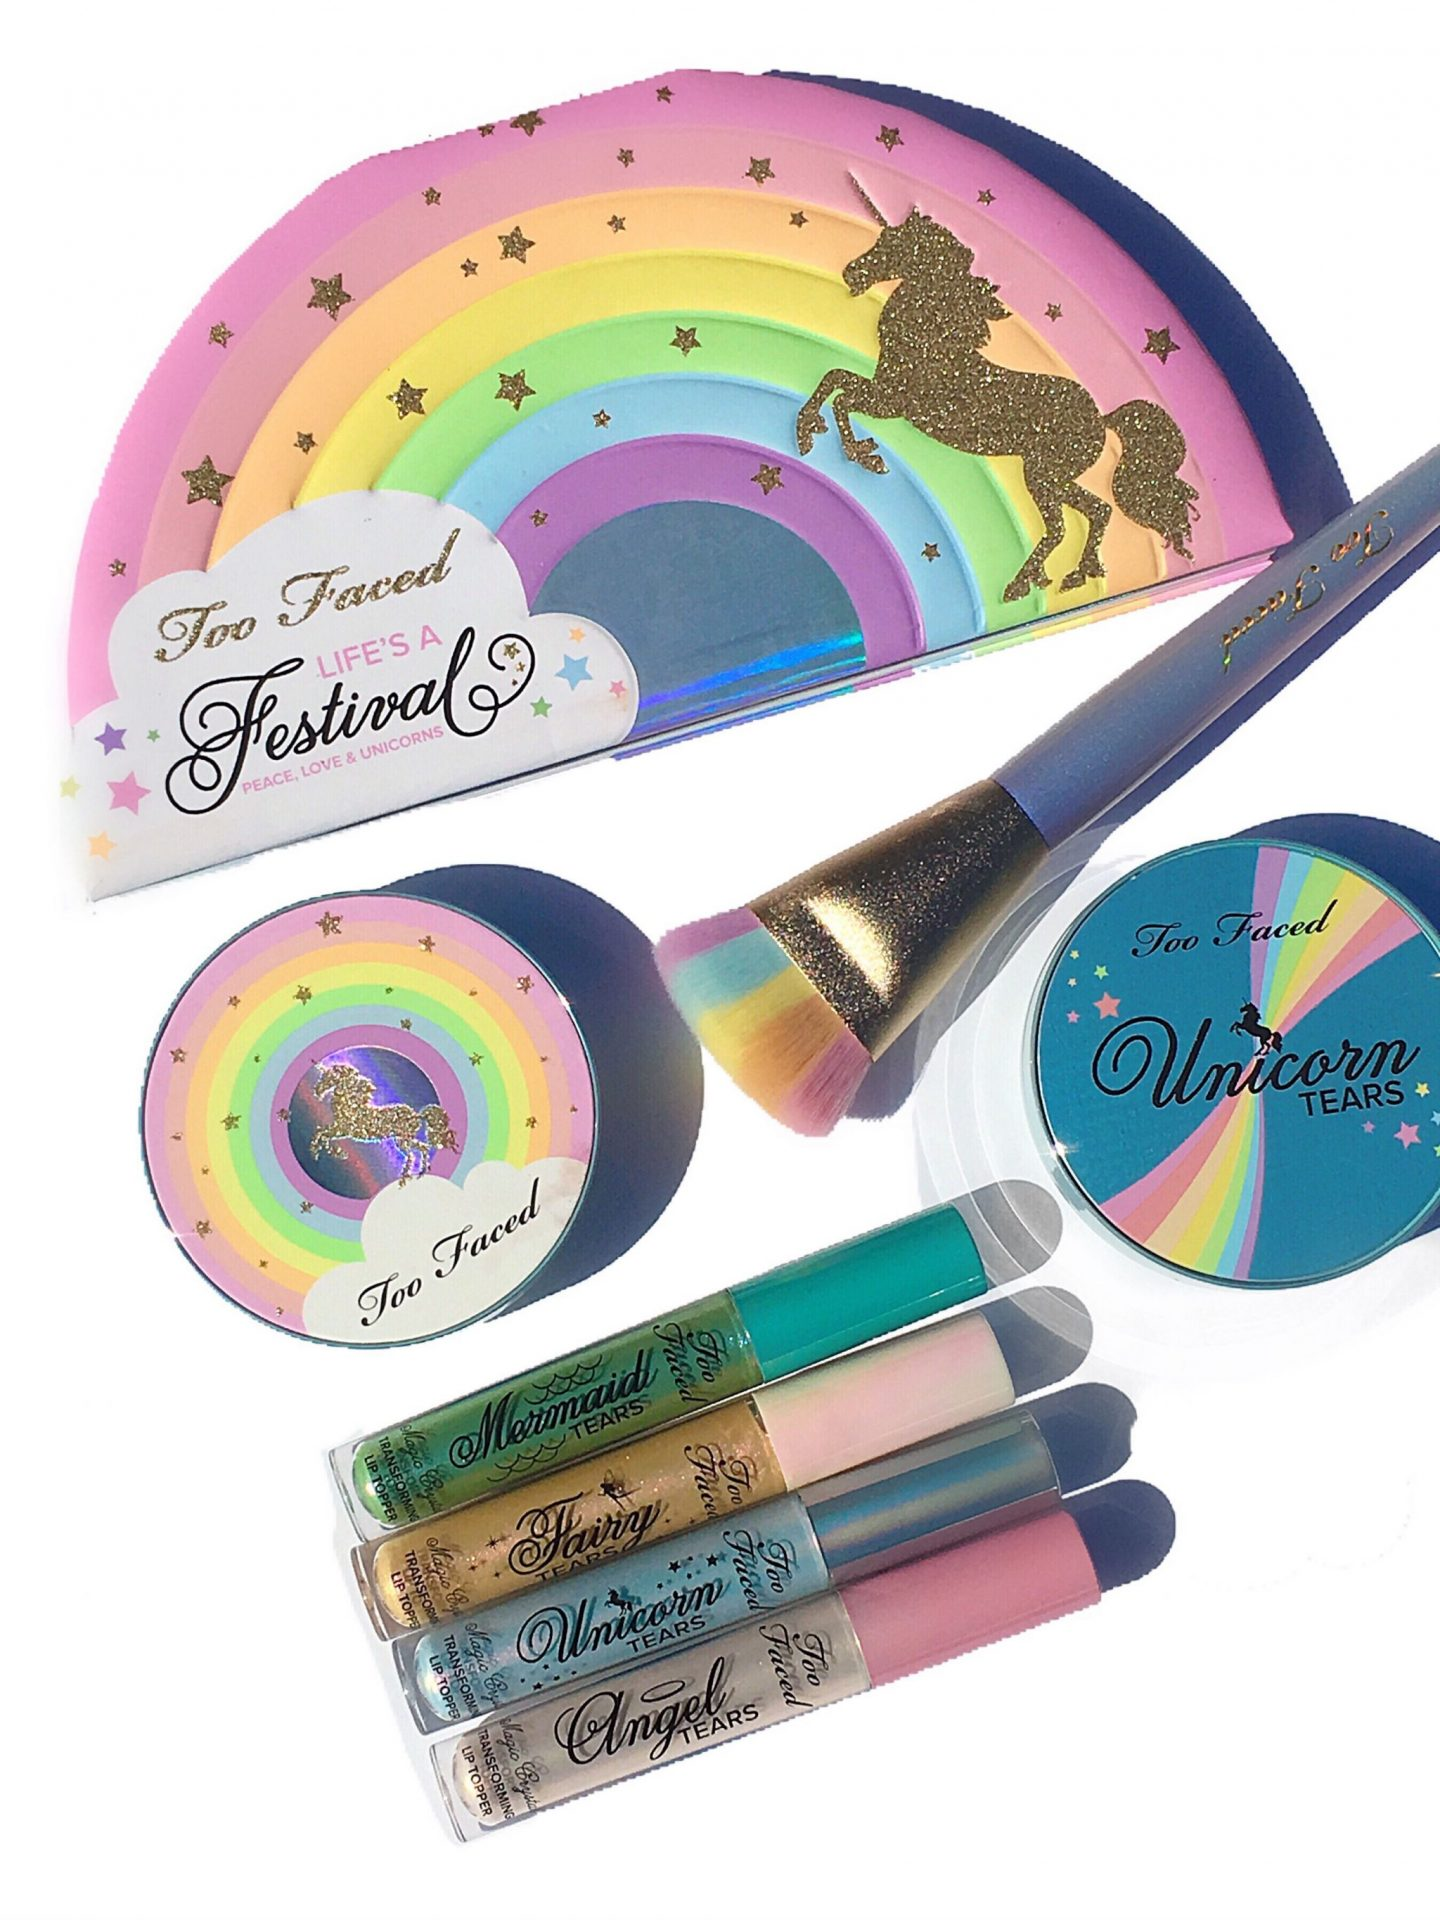 Too Faced's New Life's a Festival Collection